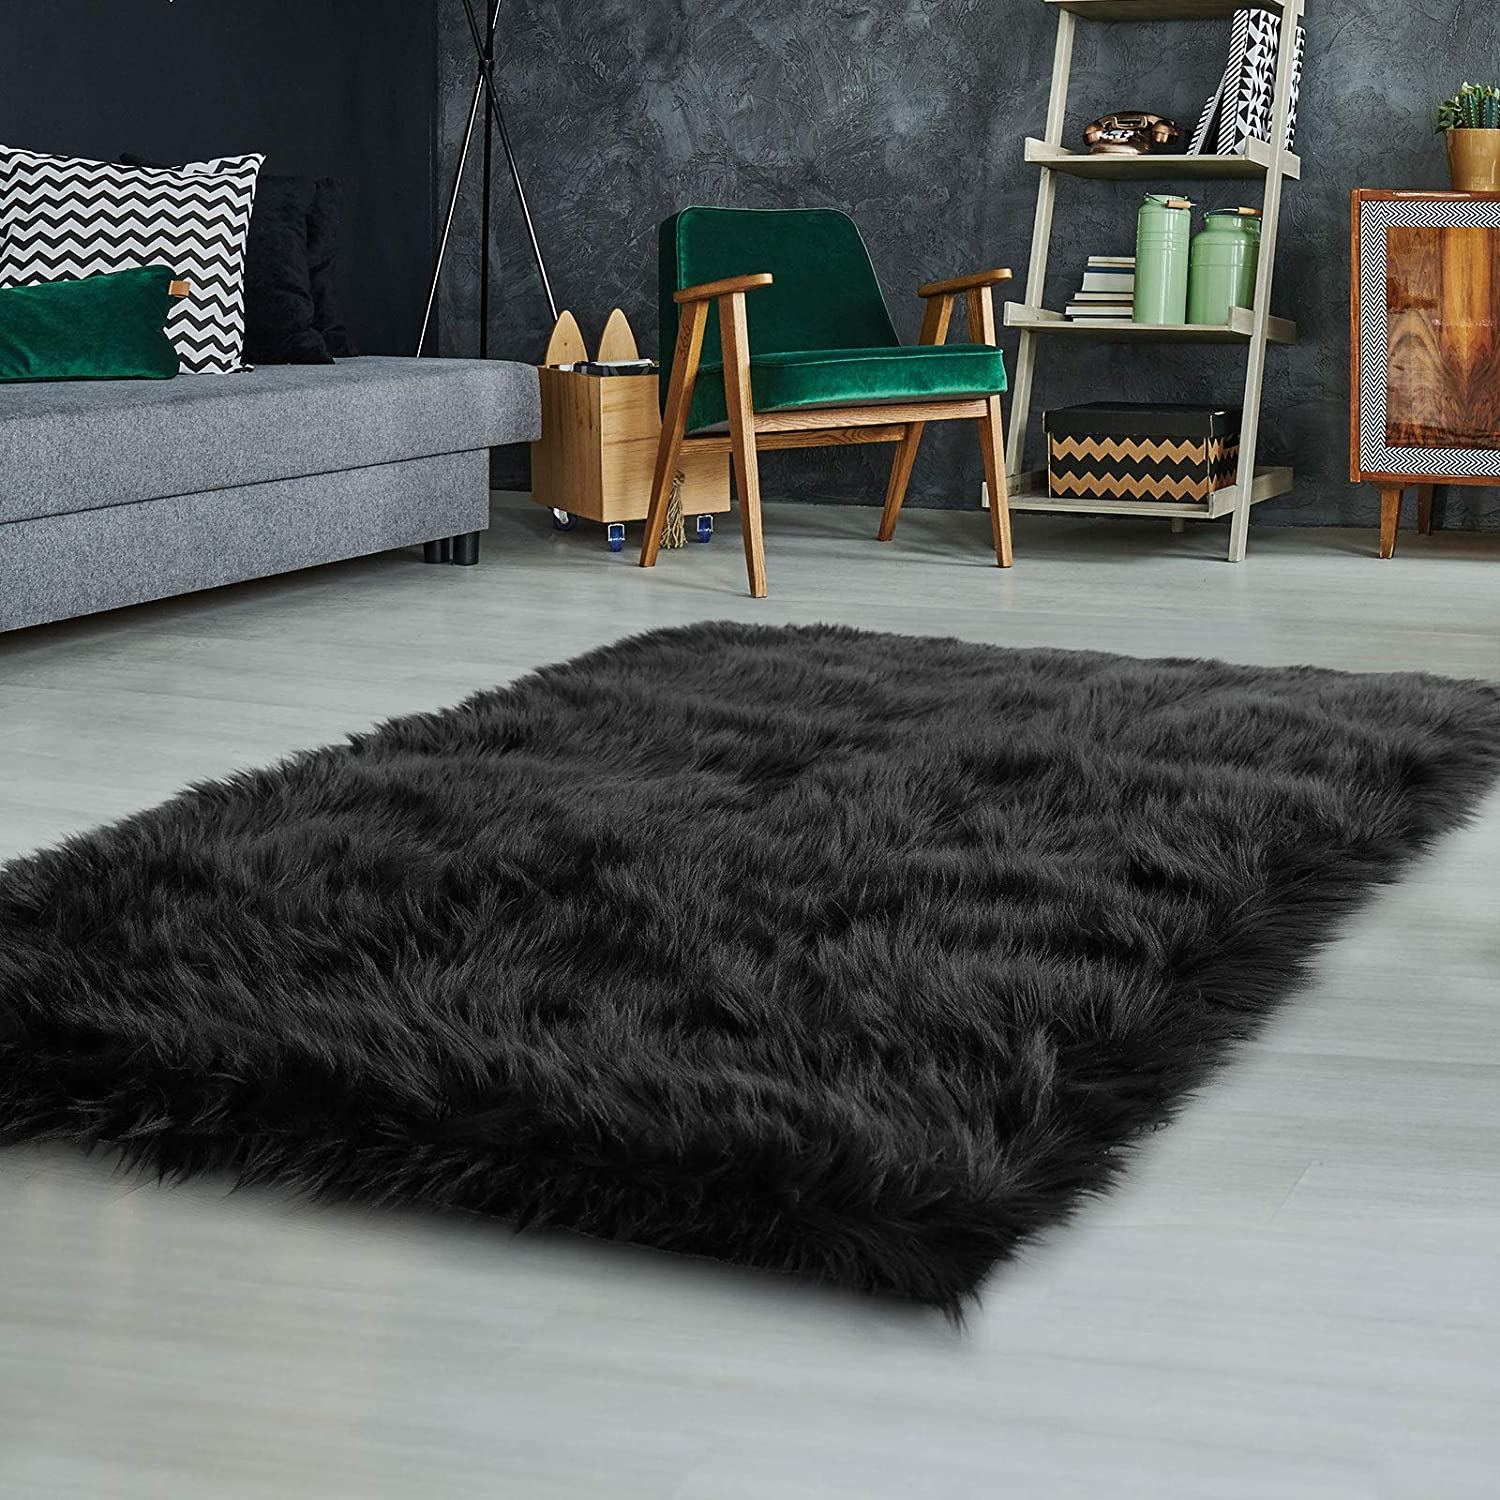 Kids//Baby Room Ophanie Ultra-Luxurious Fluffy Rectangle Area Rug Soft and Thick Faux Fur Chair Couch Cover Small Shaggy Rug Non-Slip Carpet for Bedroom Modern Decor Rug Black 2x3 Feet